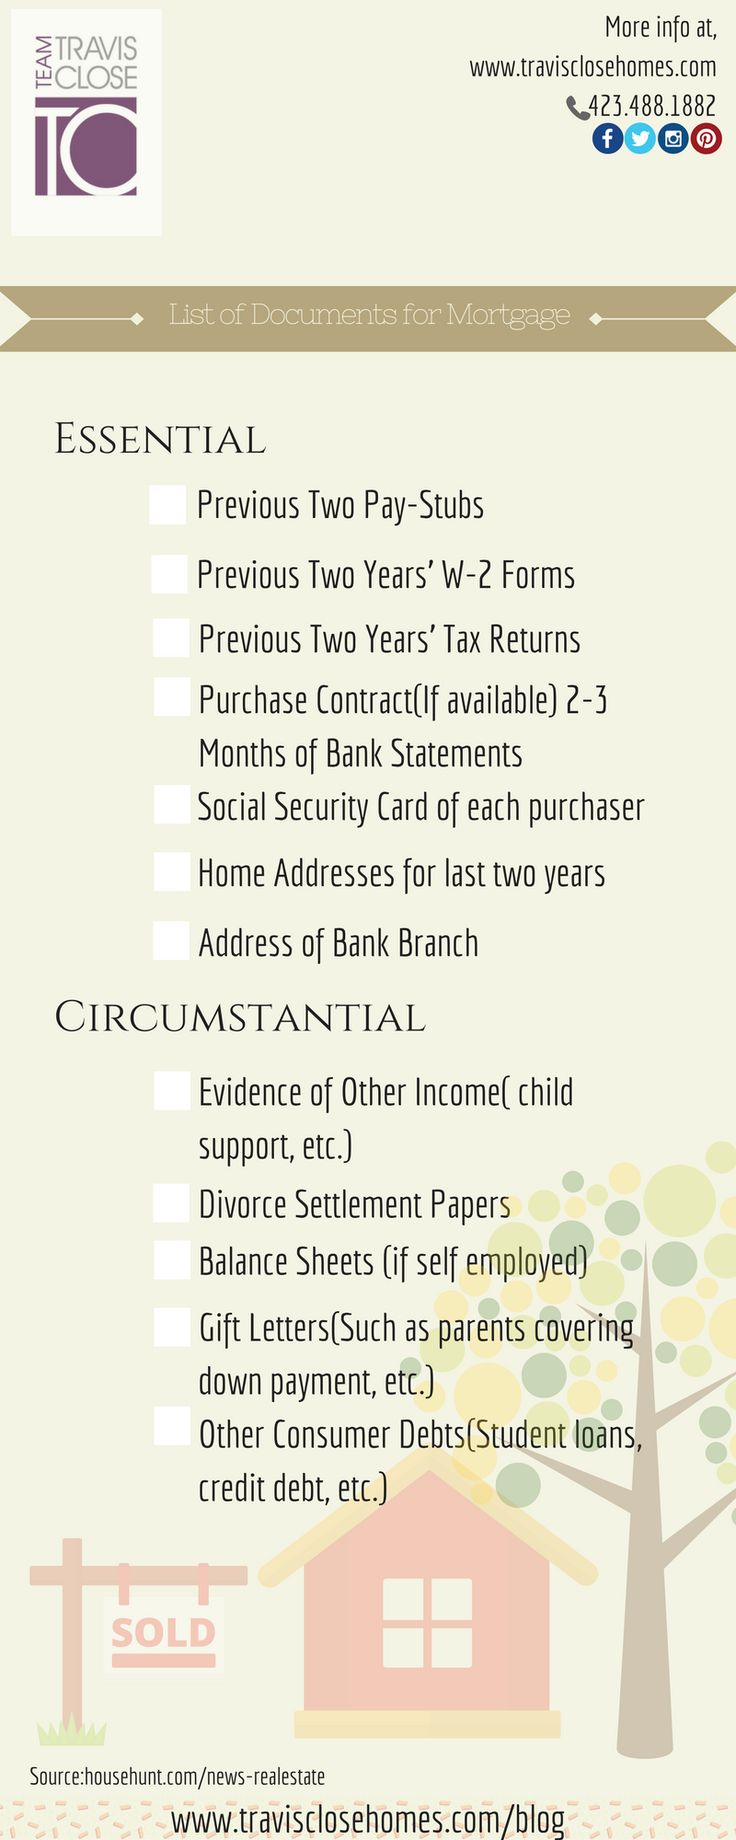 102 best the travis close team real estate infographics images on list of documents needed for a mortgage va fha conventional loan chattanooga mortgage spiritdancerdesigns Choice Image